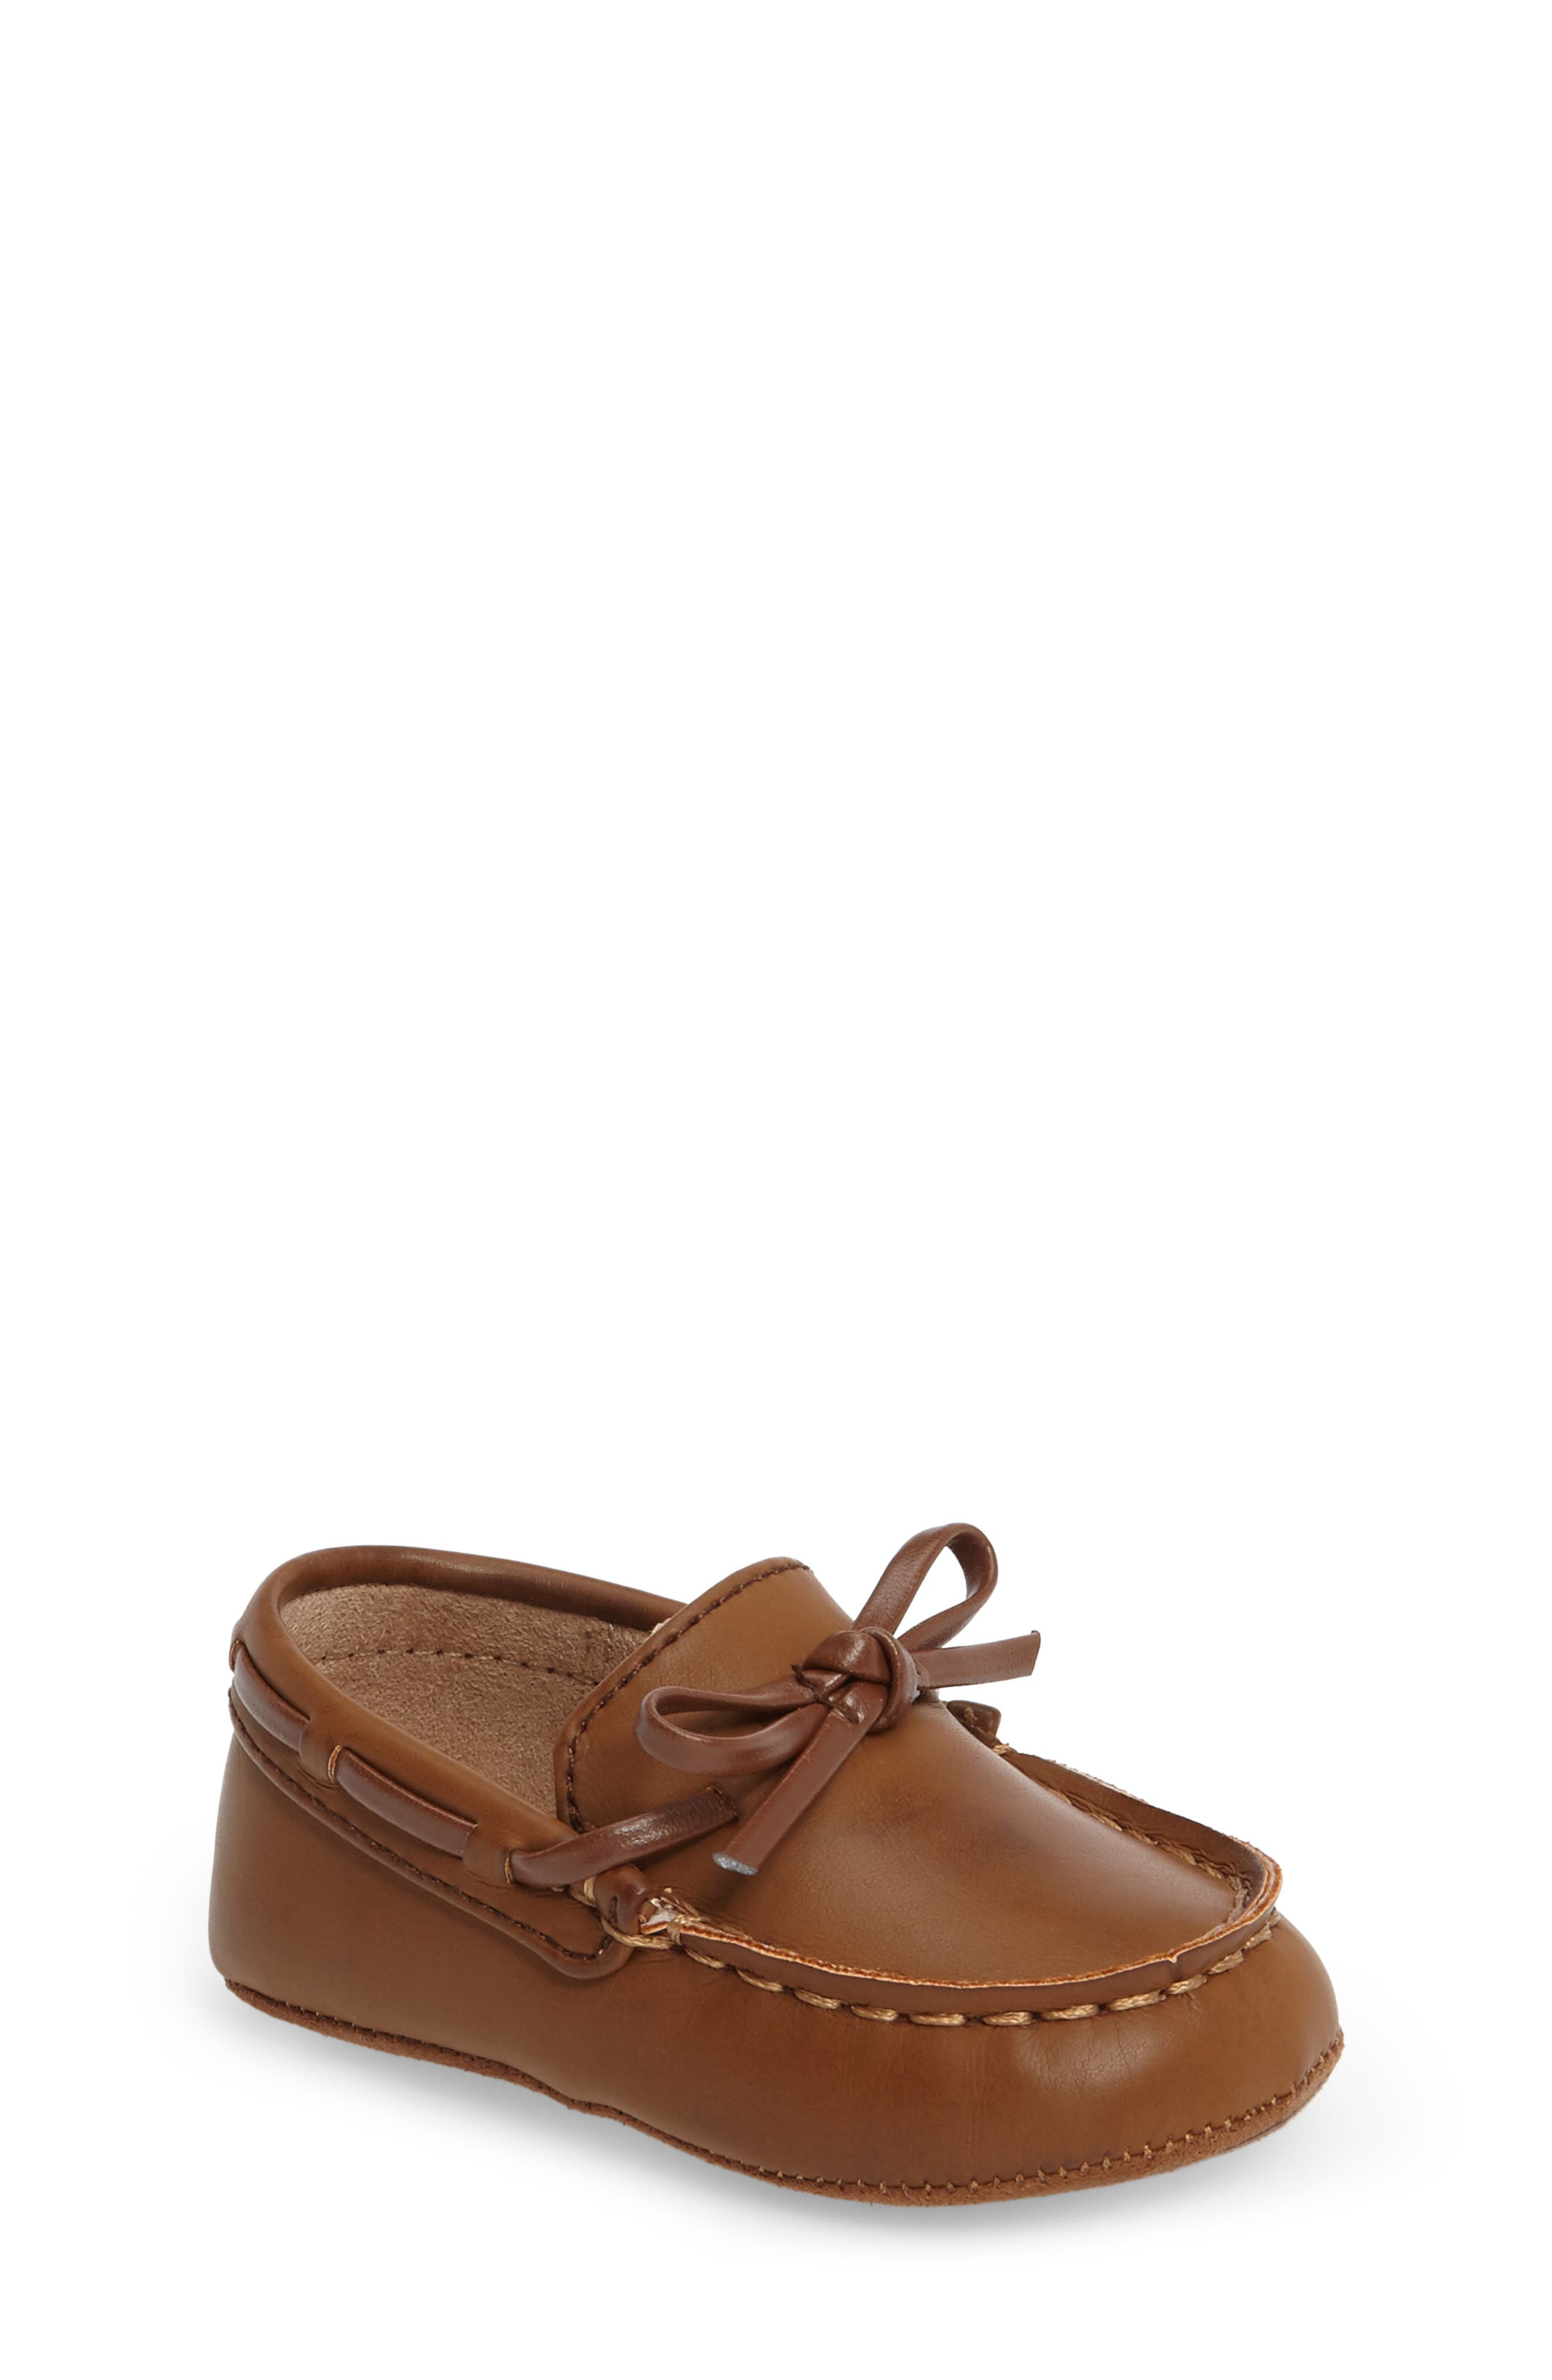 Baby Boat Shoe,                         Main,                         color, CARAMEL